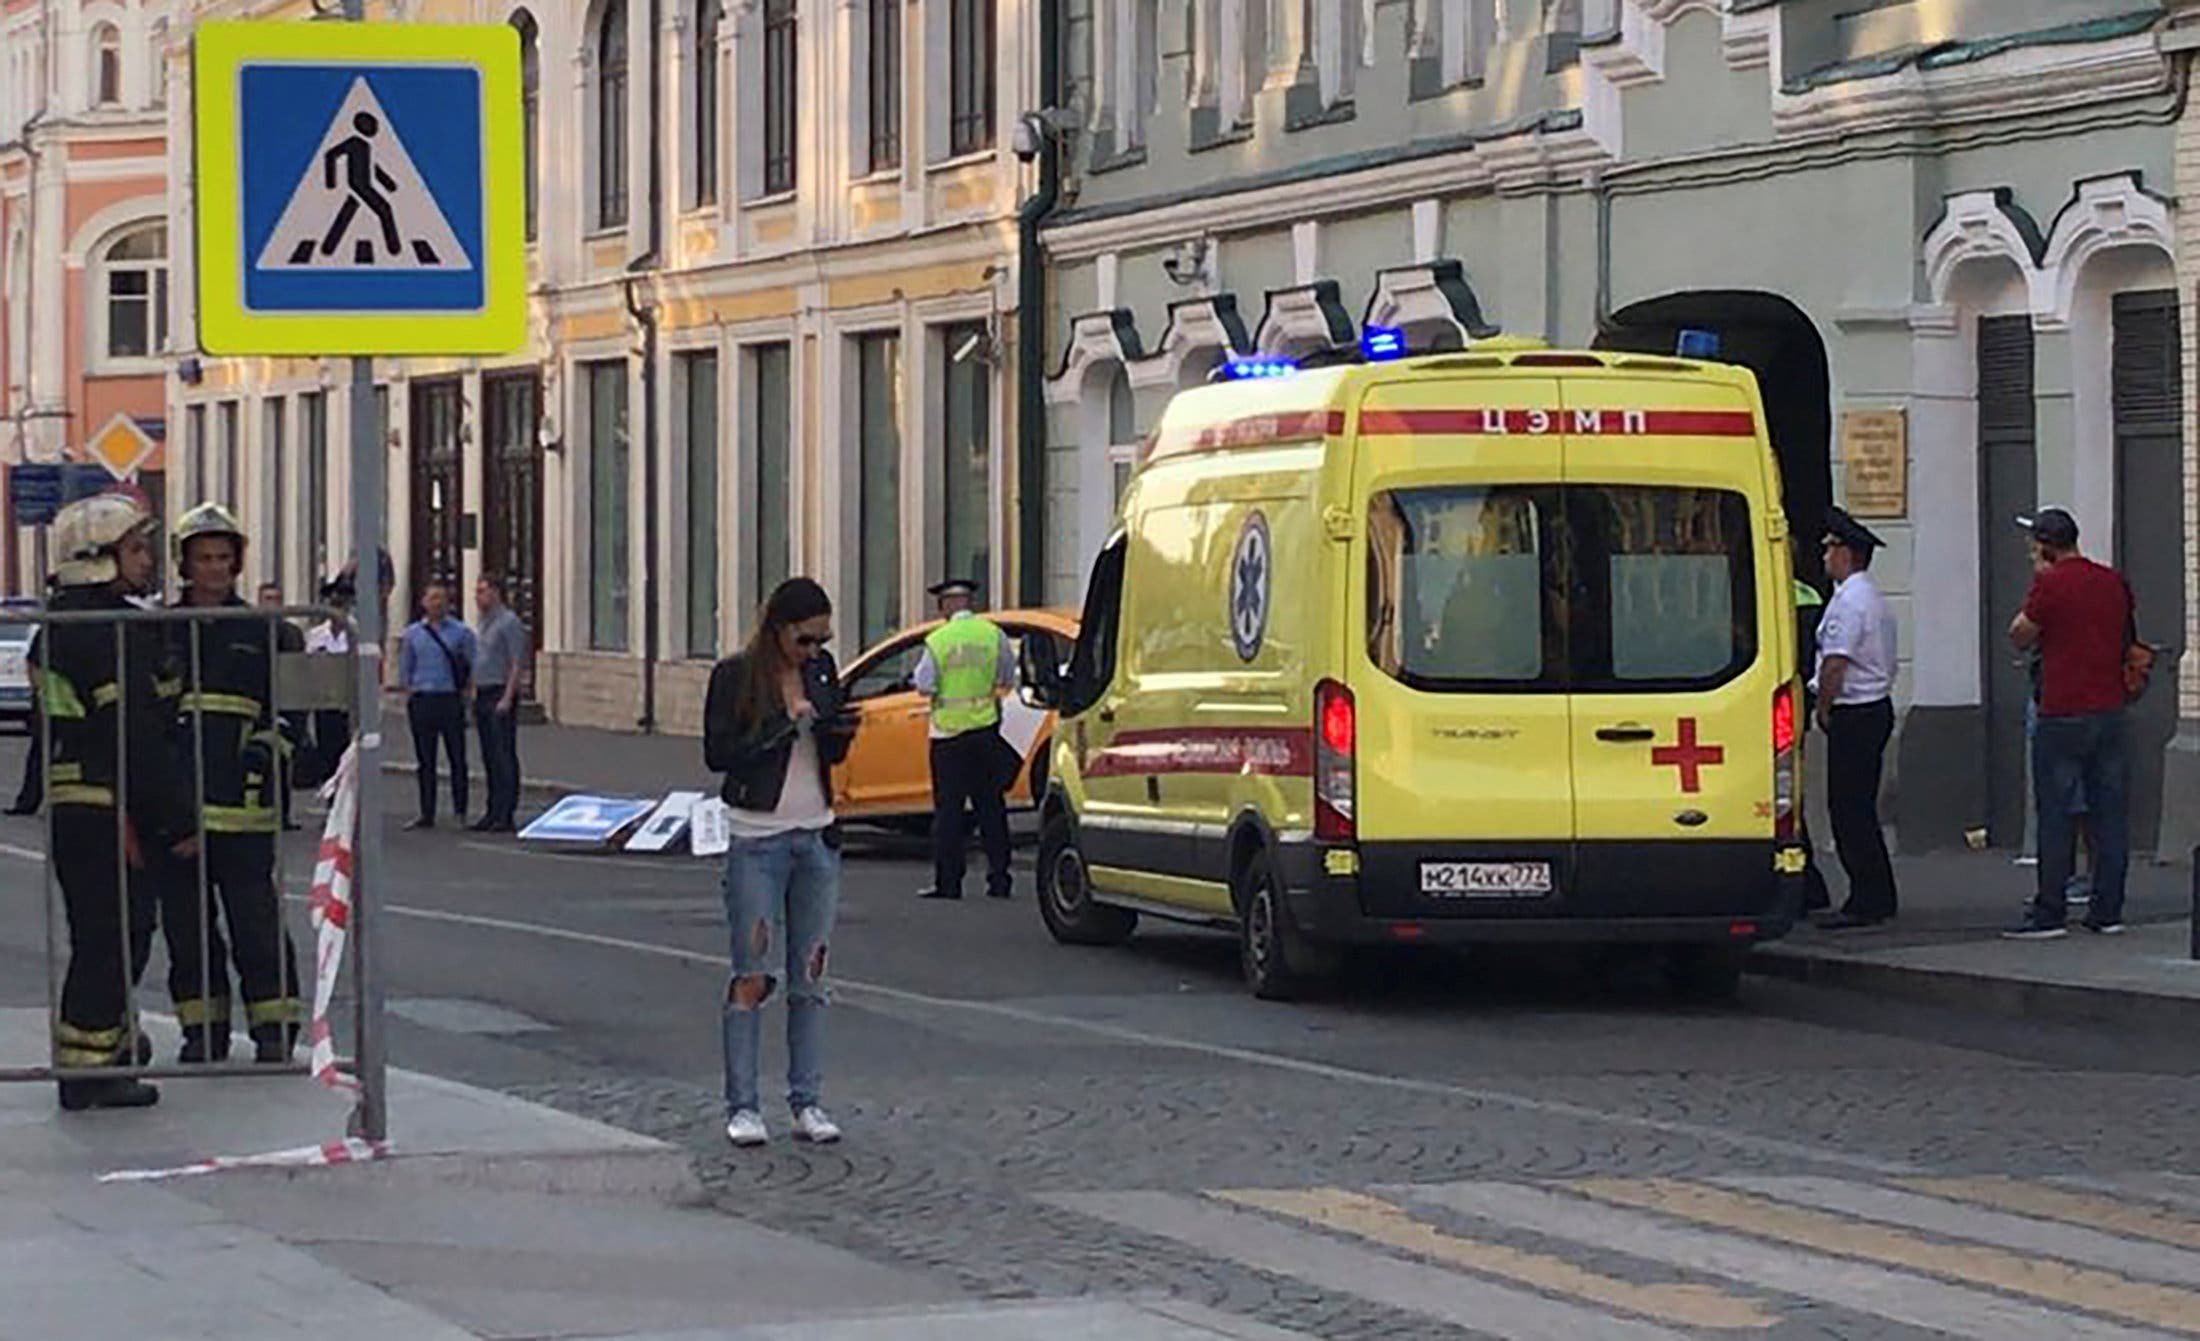 An ambulance is parked near a damaged taxi, which ran into crowds of people in central Moscow. (Reuters)